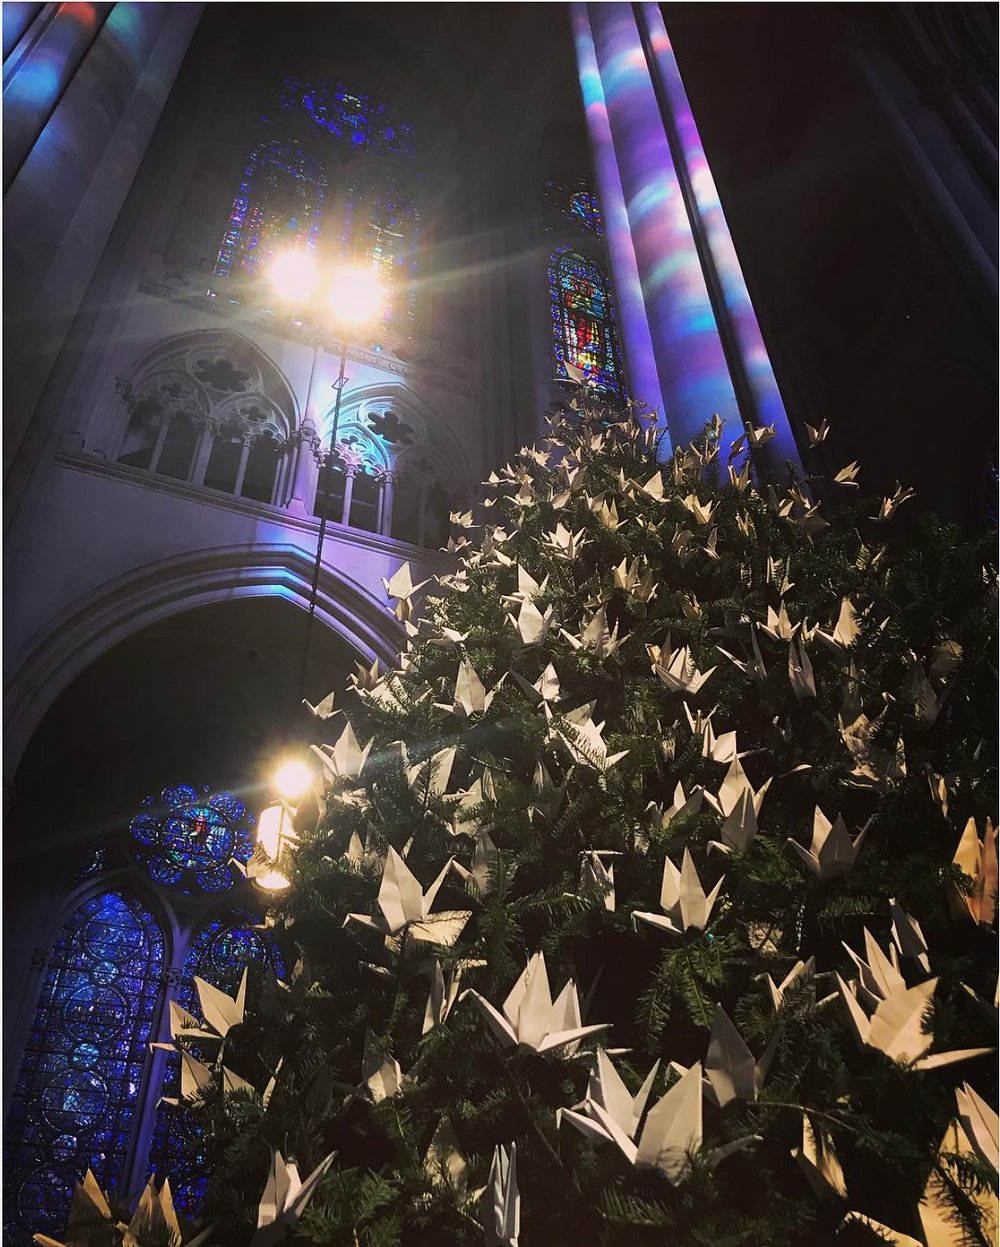 The Peace Tree at the Cathedral of St. John the Divine